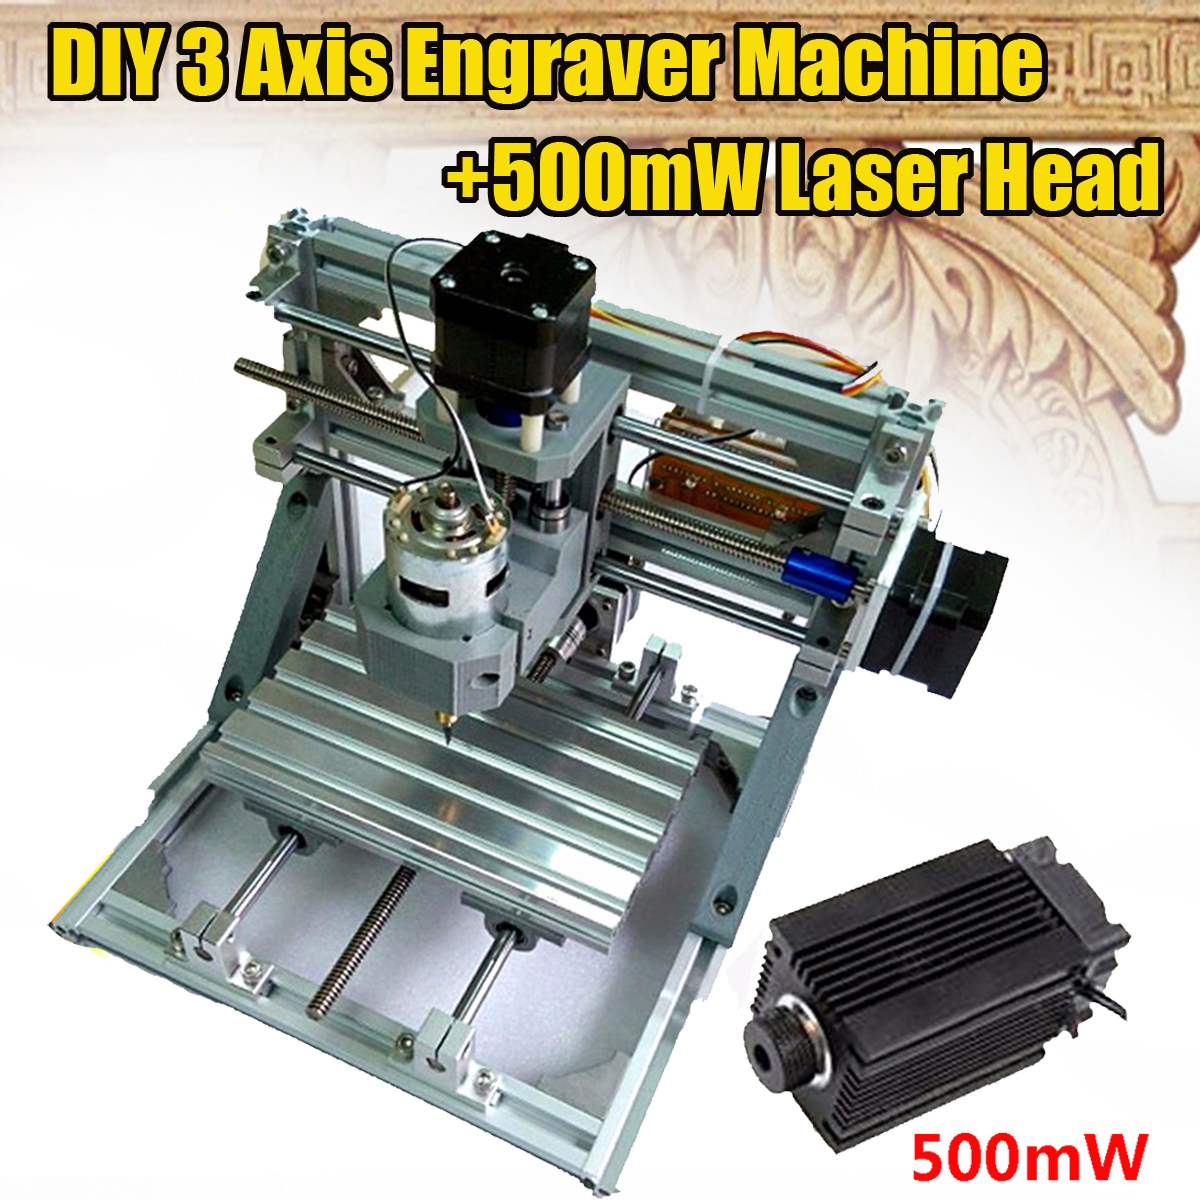 DIY 3 Axis Engraver Milling Wood Carving CNC Engraving Machine +500MW Laser Head Working Area 160 X 105 X 30mm laser head owx8060 owy8075 onp8170